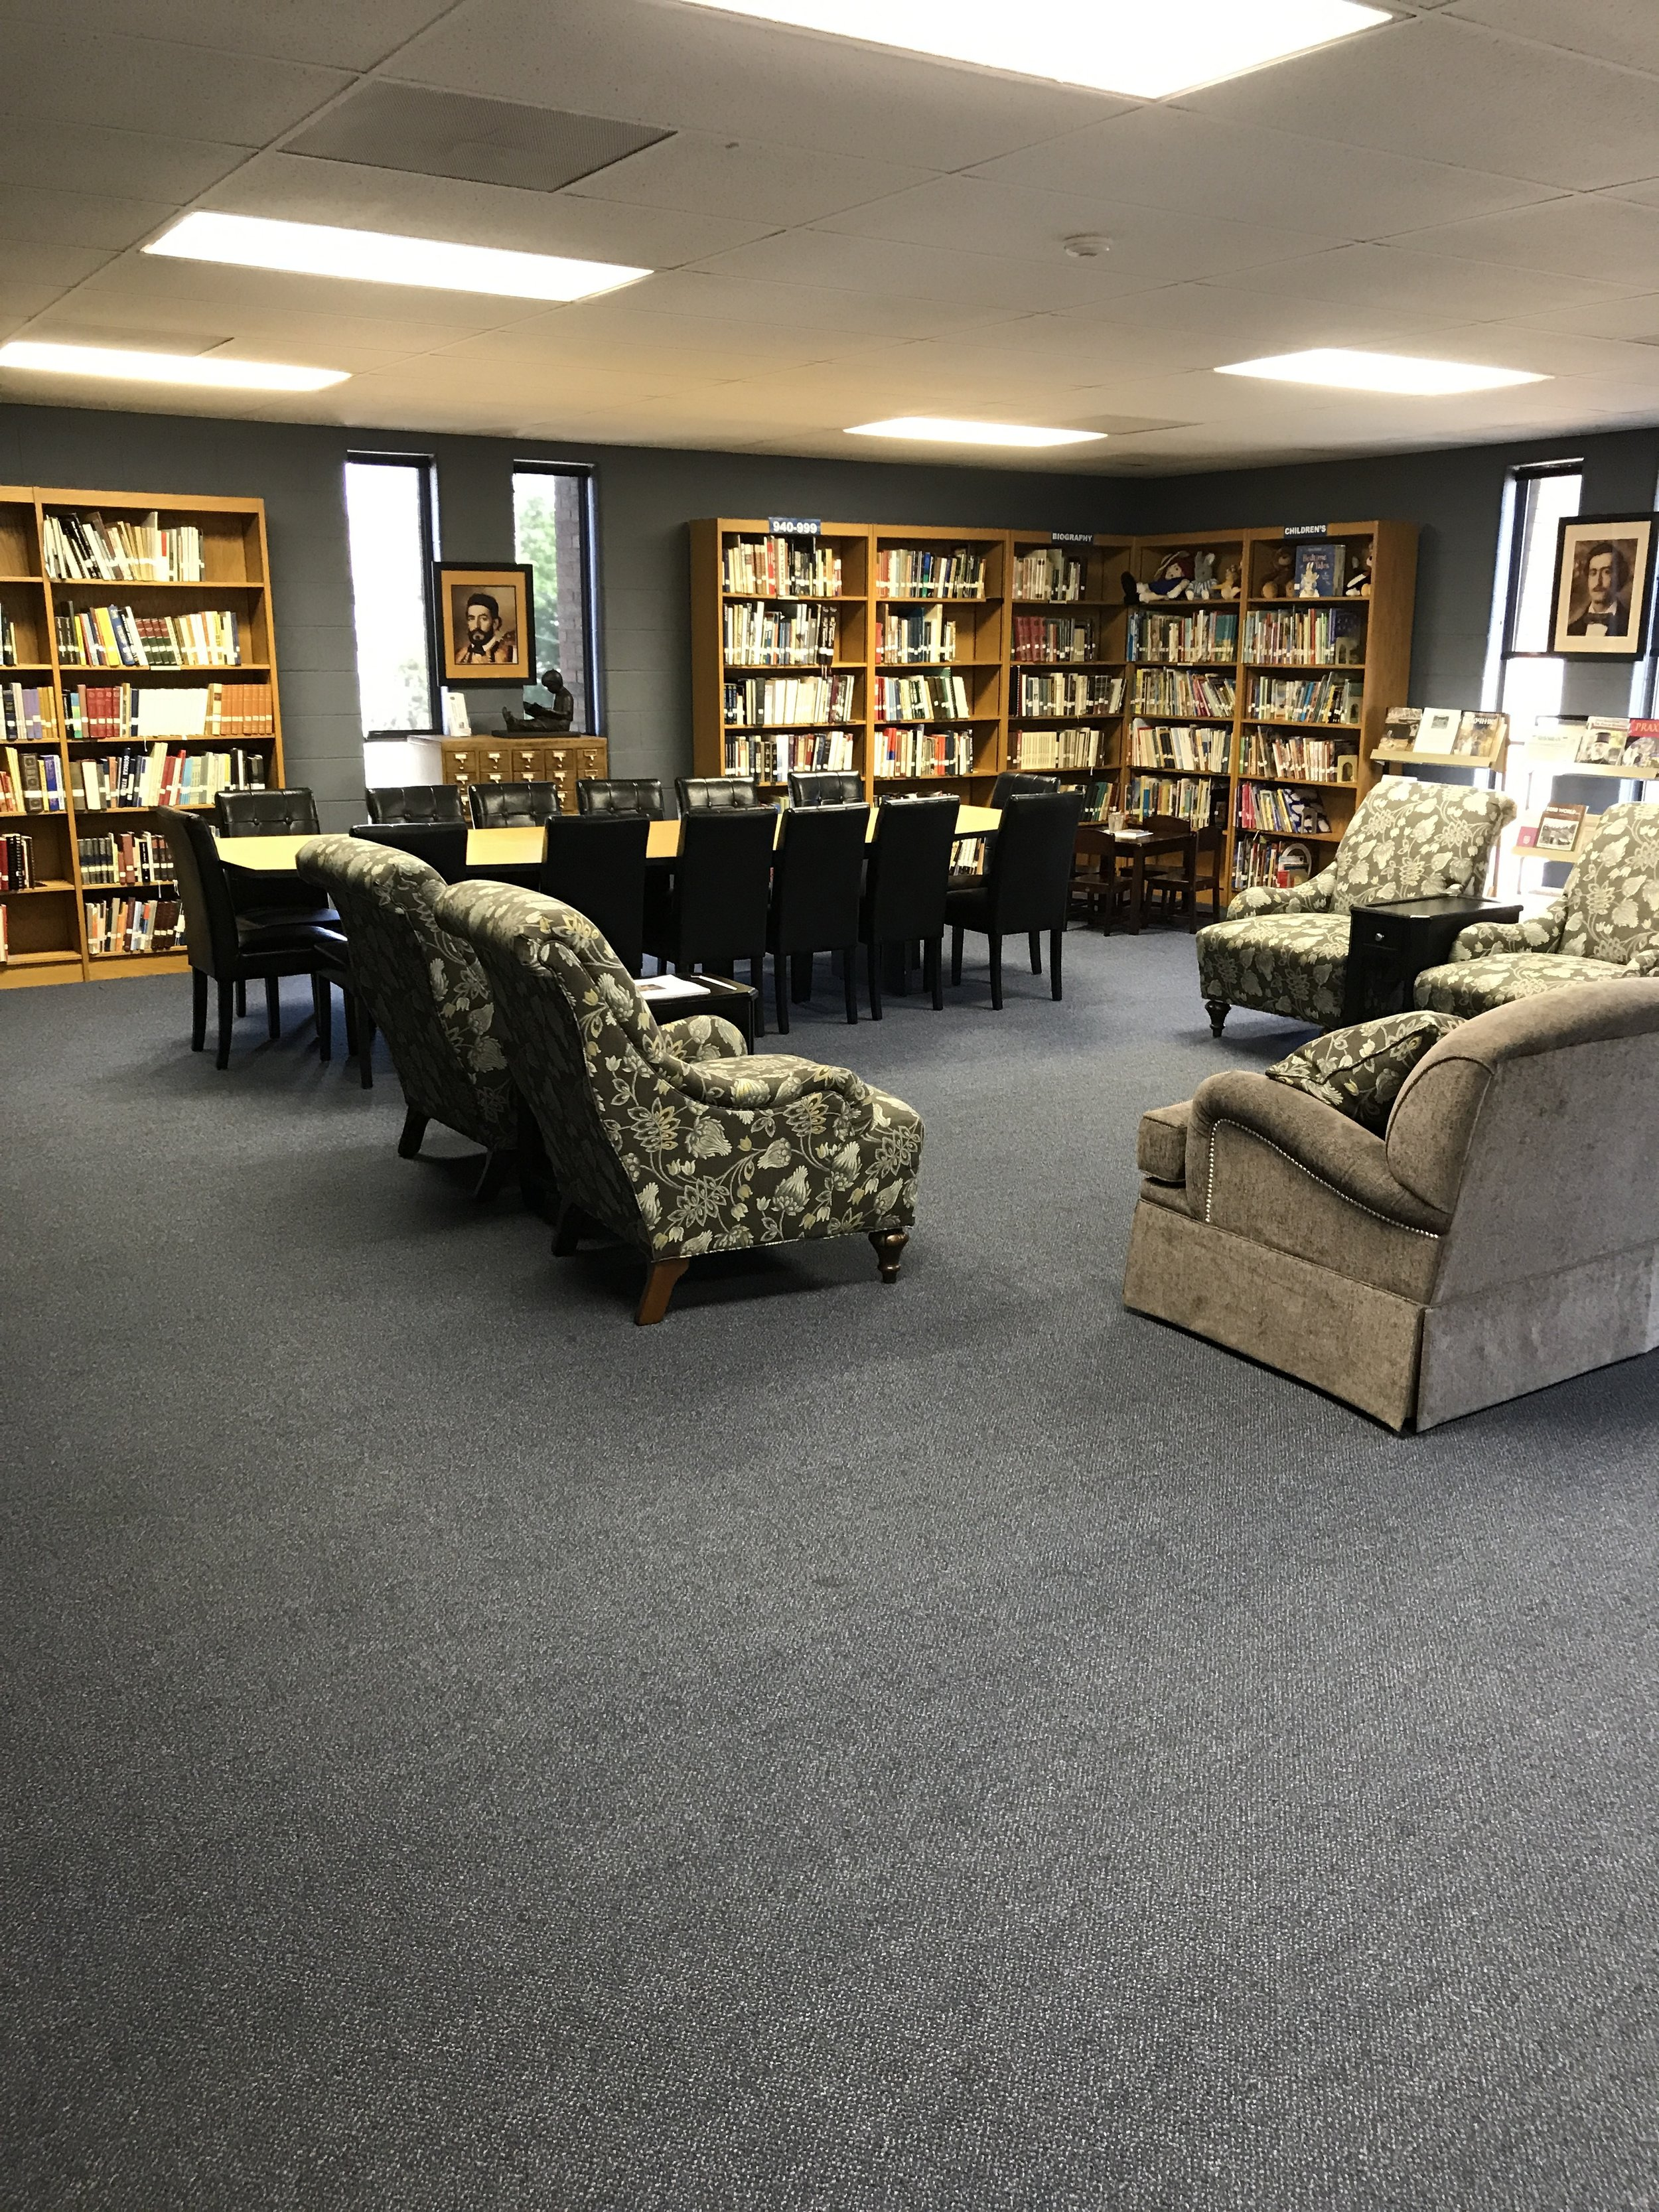 Board meetings, conferences, planning committee - our Library is the perfect room.